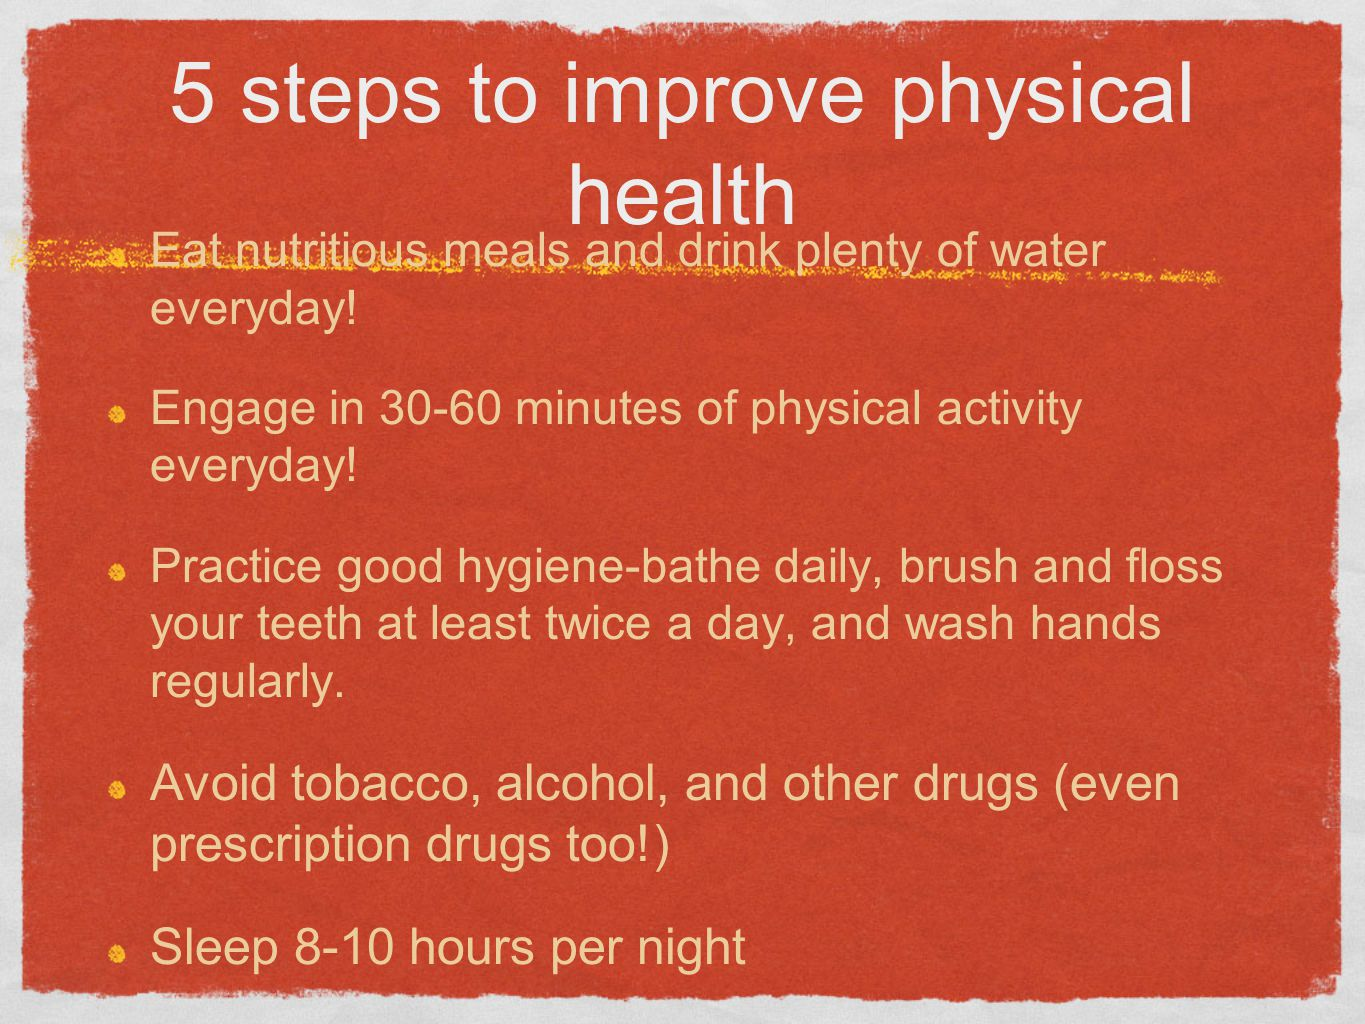 5 steps to improve physical health Eat nutritious meals and drink plenty of water everyday.